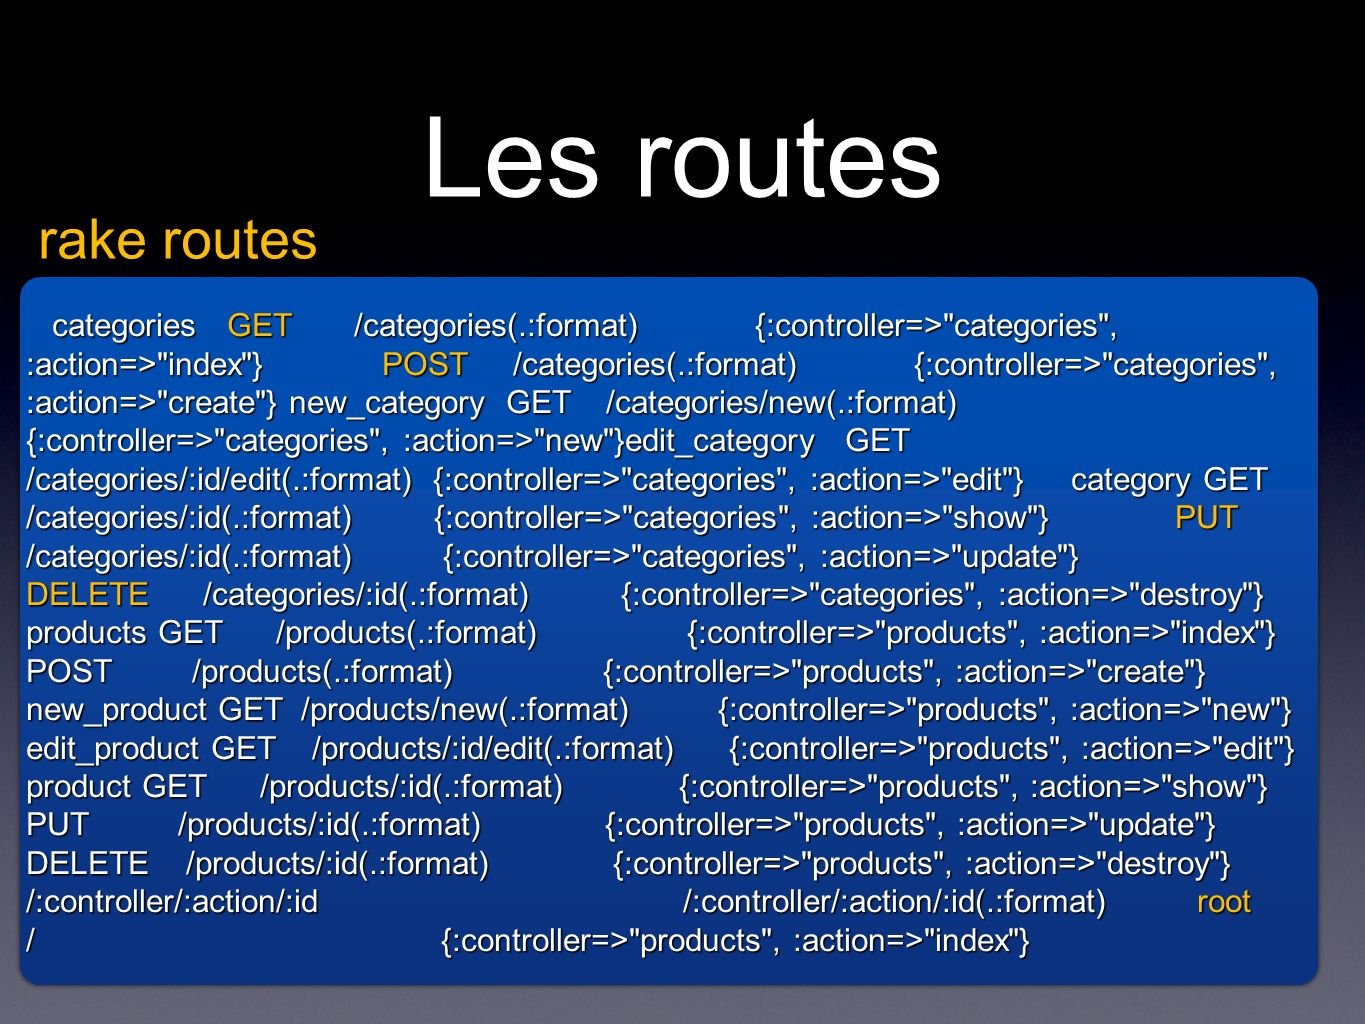 Les routes rake routes categories GET /categories(.:format) {:controller=> categories , :action=> index } POST /categories(.:format) {:controller=> categories , :action=> create } new_category GET /categories/new(.:format) {:controller=> categories , :action=> new }edit_category GET /categories/:id/edit(.:format) {:controller=> categories , :action=> edit } category GET /categories/:id(.:format) {:controller=> categories , :action=> show } PUT /categories/:id(.:format) {:controller=> categories , :action=> update } DELETE /categories/:id(.:format) {:controller=> categories , :action=> destroy } products GET /products(.:format) {:controller=> products , :action=> index } POST /products(.:format) {:controller=> products , :action=> create } new_product GET /products/new(.:format) {:controller=> products , :action=> new } edit_product GET /products/:id/edit(.:format) {:controller=> products , :action=> edit } product GET /products/:id(.:format) {:controller=> products , :action=> show } PUT /products/:id(.:format) {:controller=> products , :action=> update } DELETE /products/:id(.:format) {:controller=> products , :action=> destroy } /:controller/:action/:id /:controller/:action/:id(.:format) root / {:controller=> products , :action=> index } categories GET /categories(.:format) {:controller=> categories , :action=> index } POST /categories(.:format) {:controller=> categories , :action=> create } new_category GET /categories/new(.:format) {:controller=> categories , :action=> new }edit_category GET /categories/:id/edit(.:format) {:controller=> categories , :action=> edit } category GET /categories/:id(.:format) {:controller=> categories , :action=> show } PUT /categories/:id(.:format) {:controller=> categories , :action=> update } DELETE /categories/:id(.:format) {:controller=> categories , :action=> destroy } products GET /products(.:format) {:controller=> products , :action=> index } POST /products(.:format) {:controller=> products , :action=> create } new_product GET /products/new(.:format) {:controller=> products , :action=> new } edit_product GET /products/:id/edit(.:format) {:controller=> products , :action=> edit } product GET /products/:id(.:format) {:controller=> products , :action=> show } PUT /products/:id(.:format) {:controller=> products , :action=> update } DELETE /products/:id(.:format) {:controller=> products , :action=> destroy } /:controller/:action/:id /:controller/:action/:id(.:format) root / {:controller=> products , :action=> index }